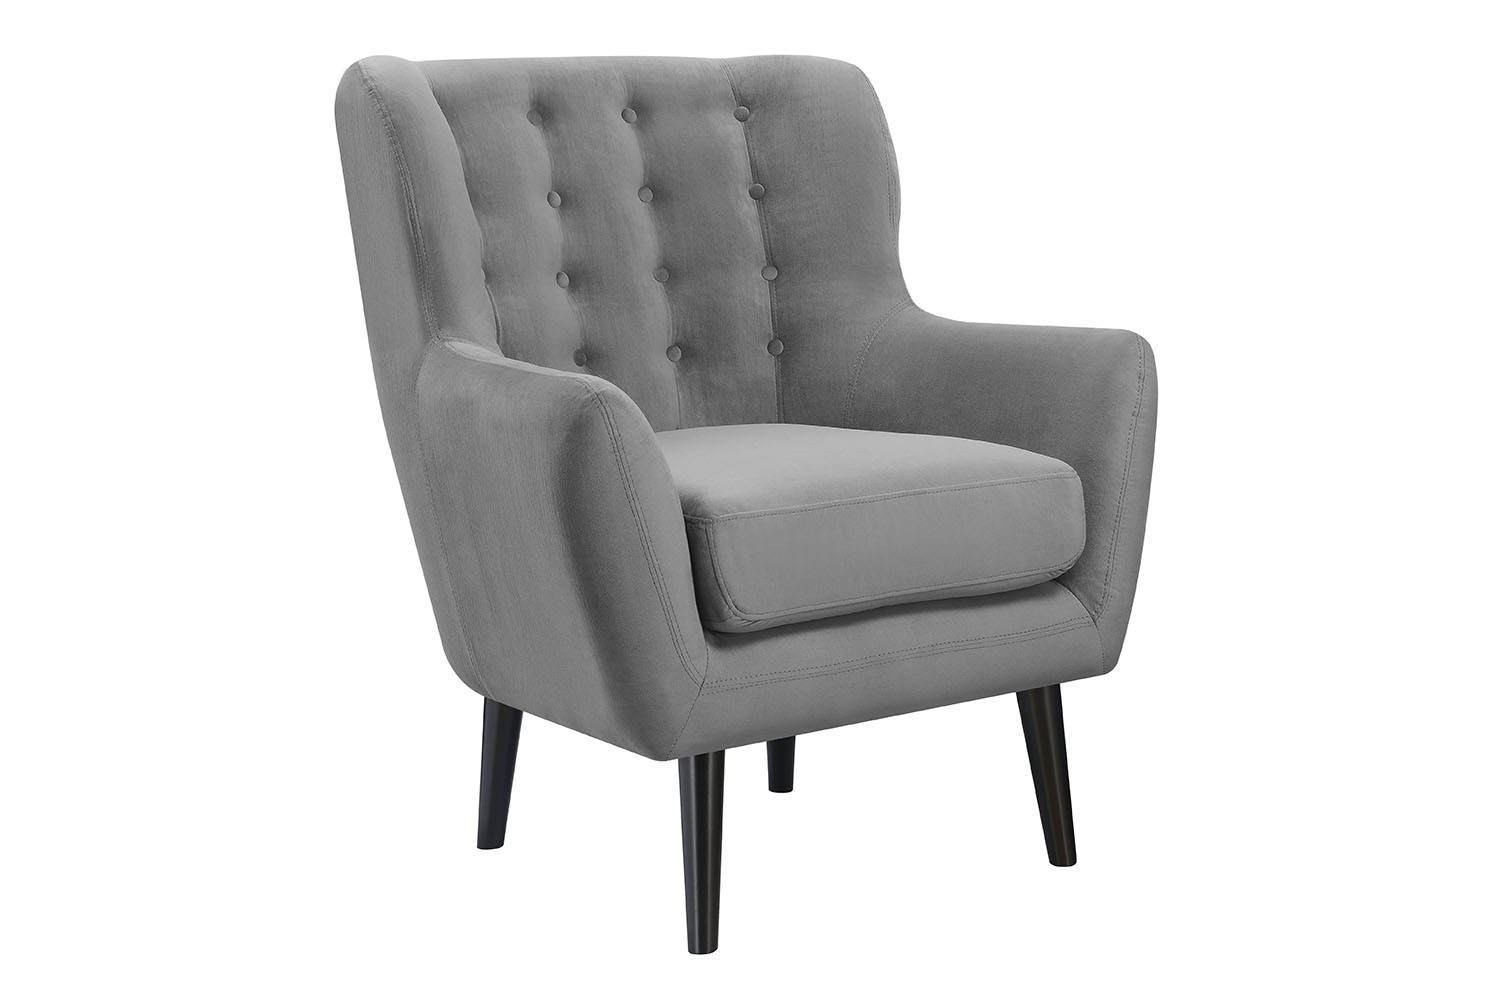 Lucy accent chair in gray